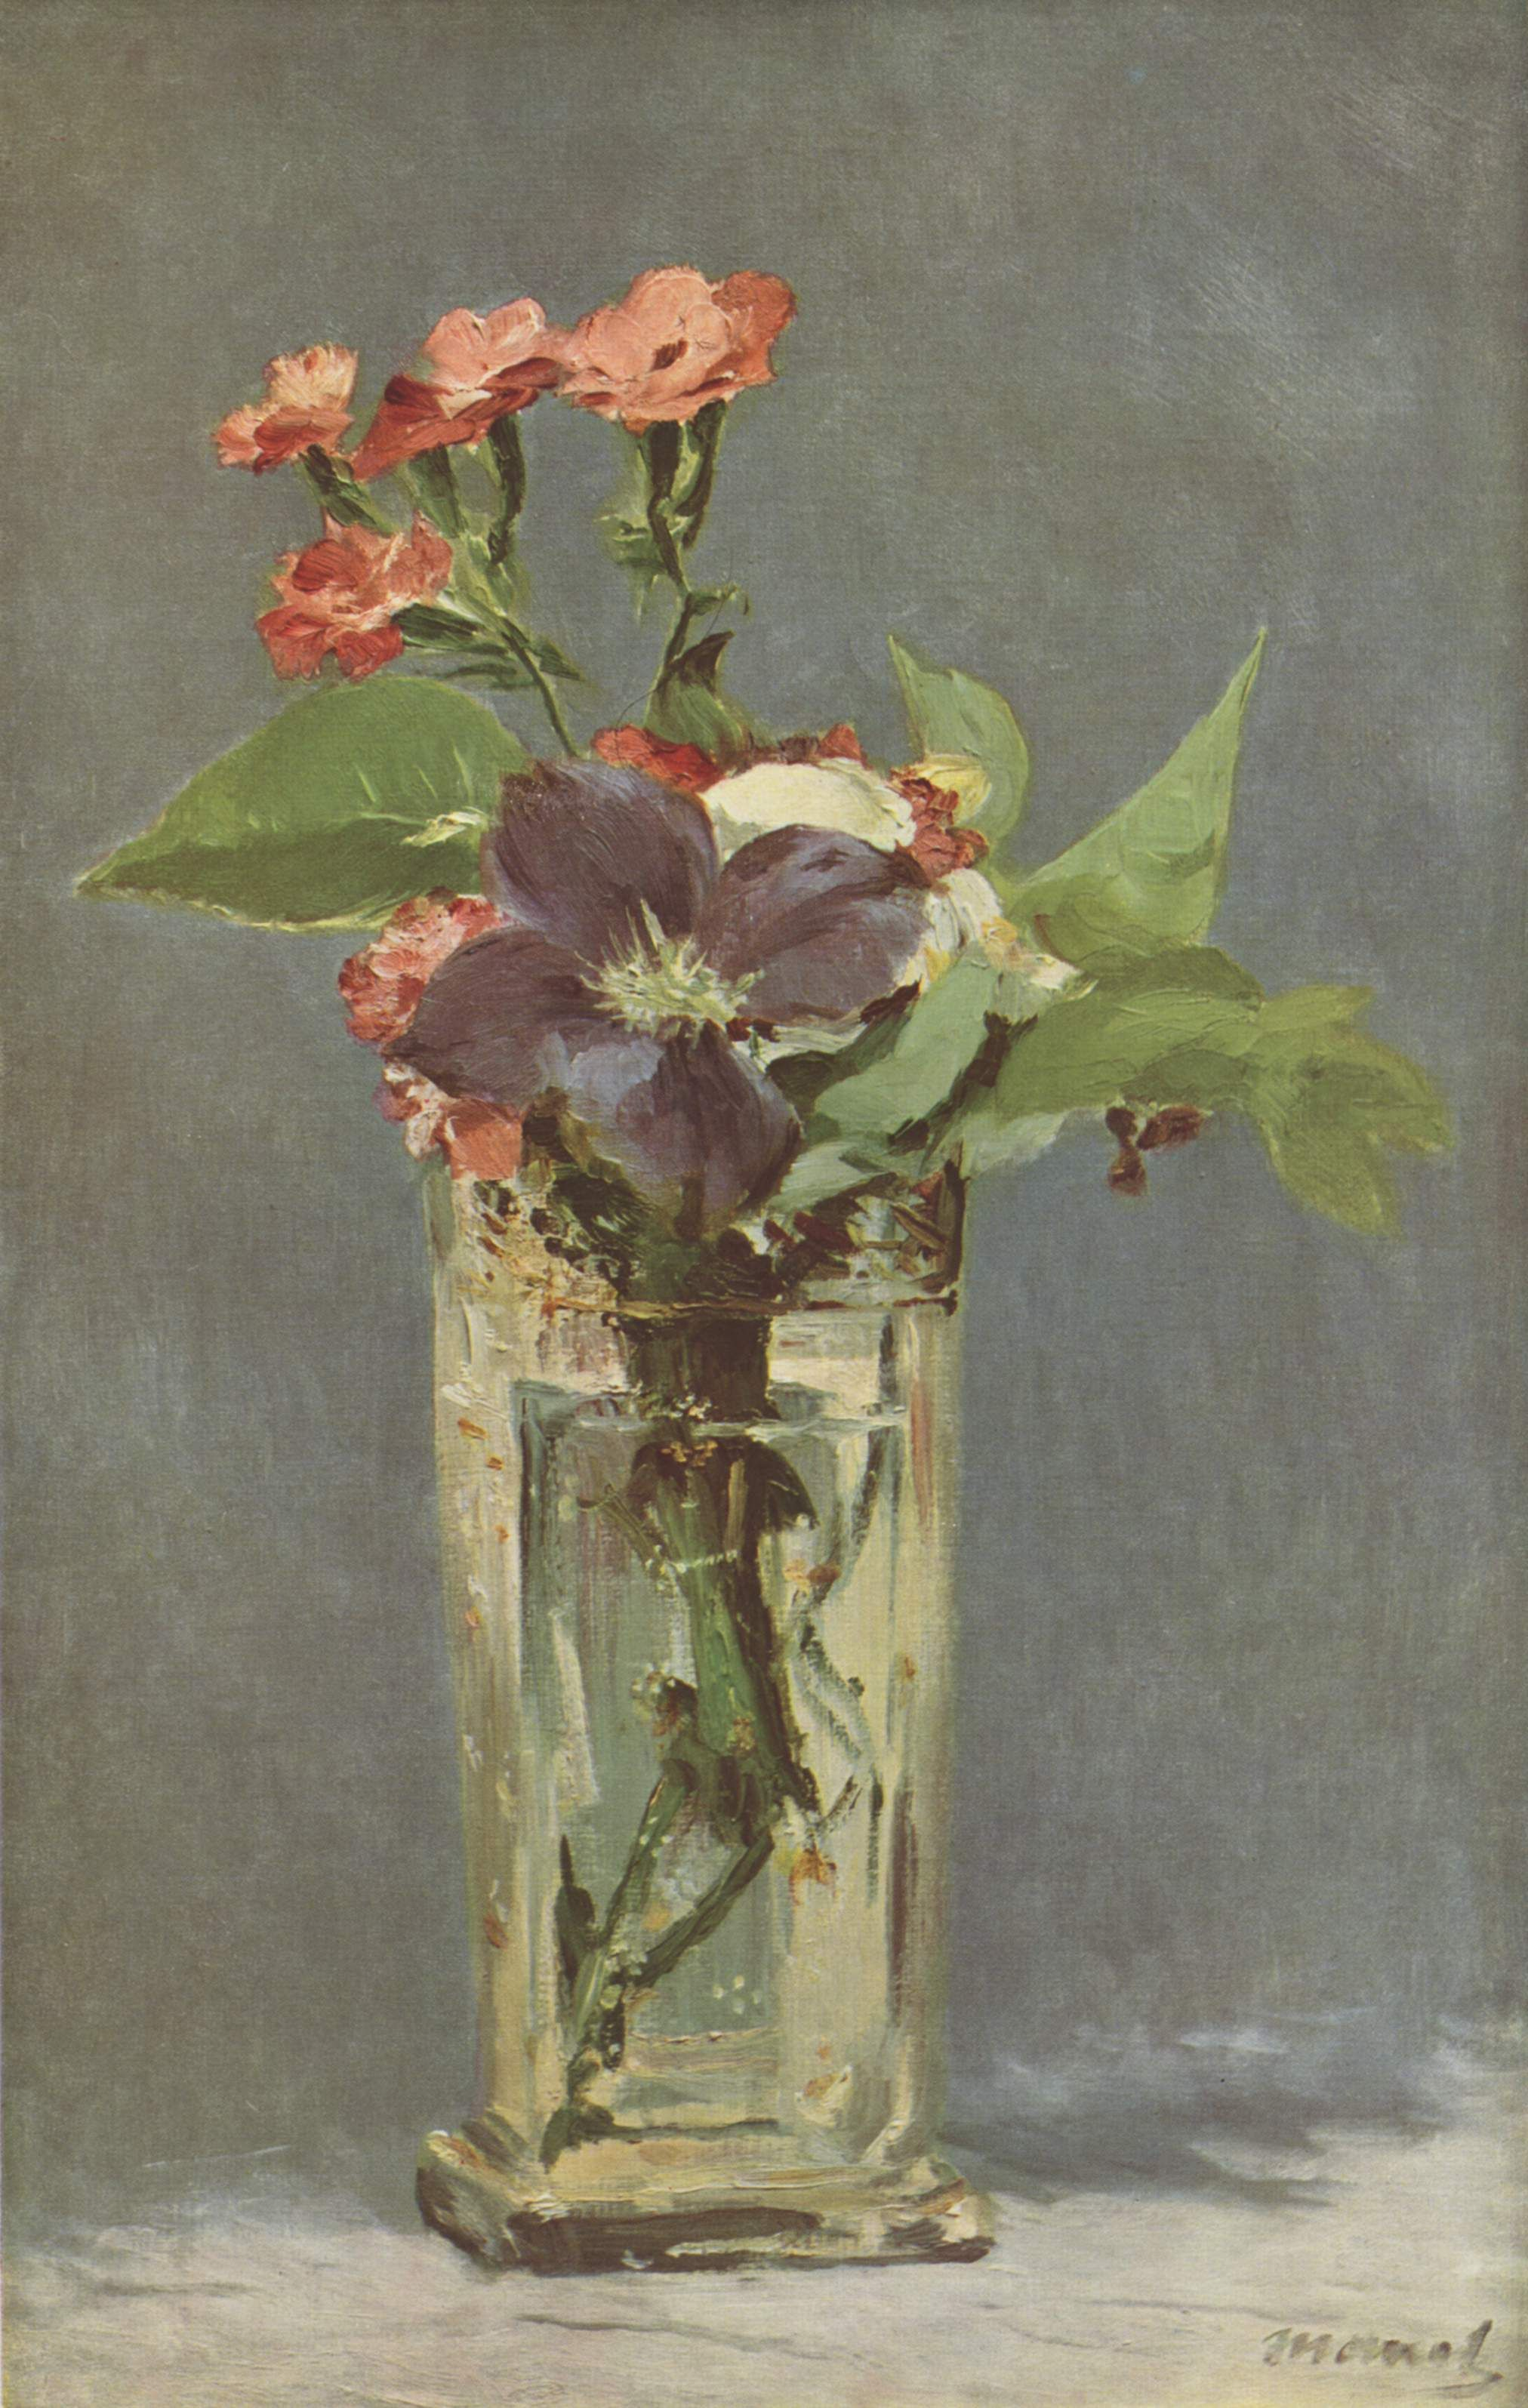 201 Douard Manet Quot Carnations And Clematis In A Crystal Vase